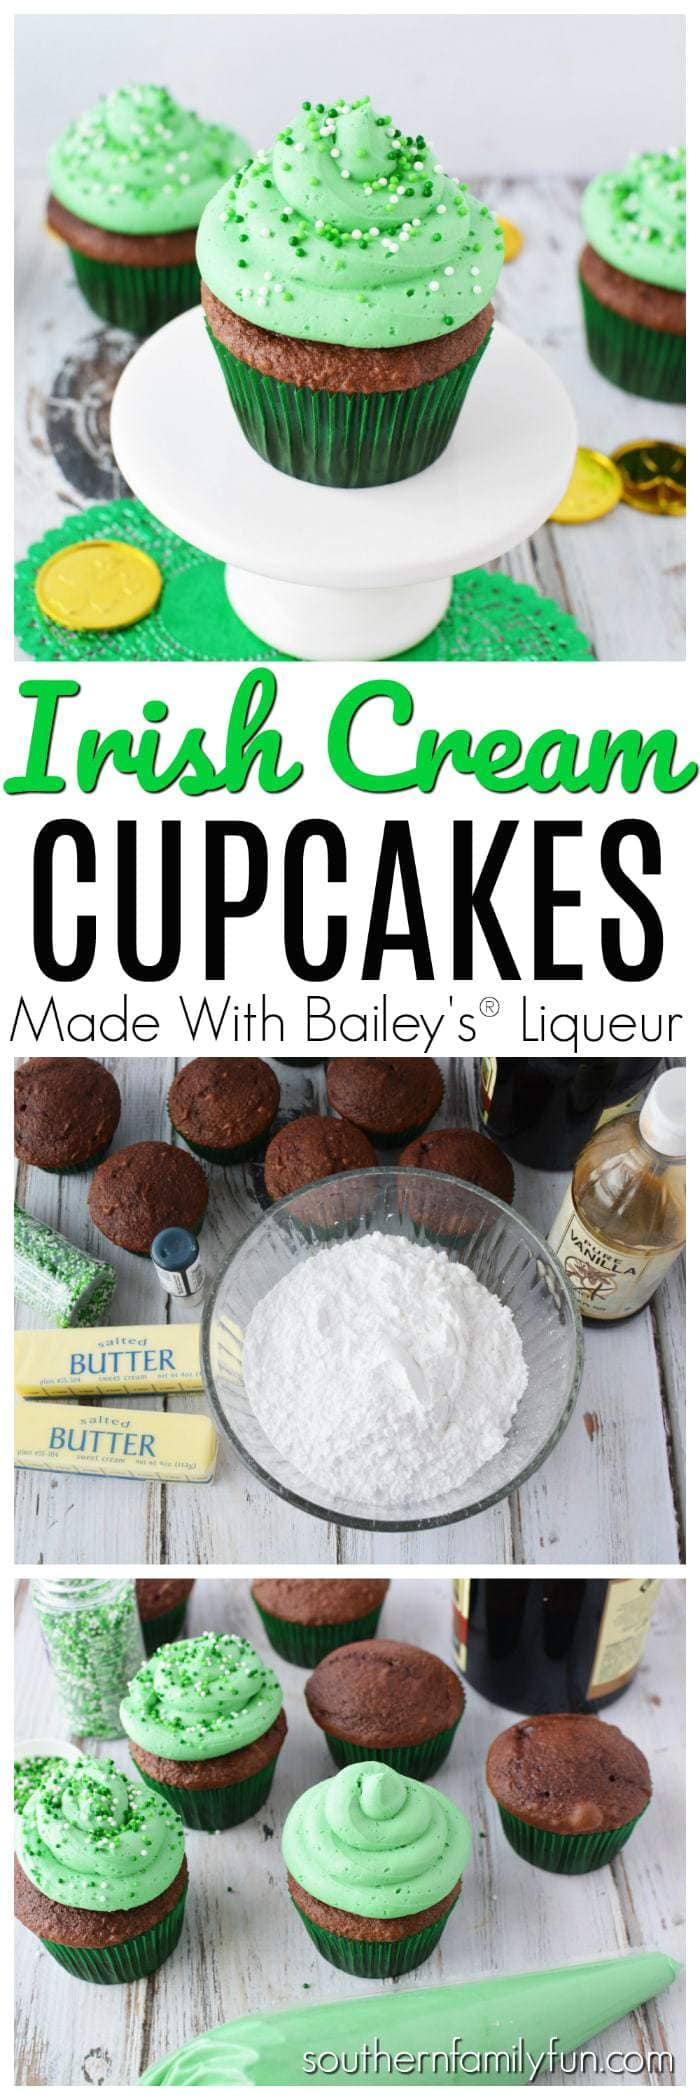 Incredibly delicious Irish Cream Cupcakes made with Baileys® These cupcakes are perfect for your St. Patrick's Day festivities. The end result is delicious cupcakes that someone will have to slap your hand to get you to stop eating.  Irish Cream Cupcakes for the win! #IrishCreamCupcakes #StPatricksDayRecipes